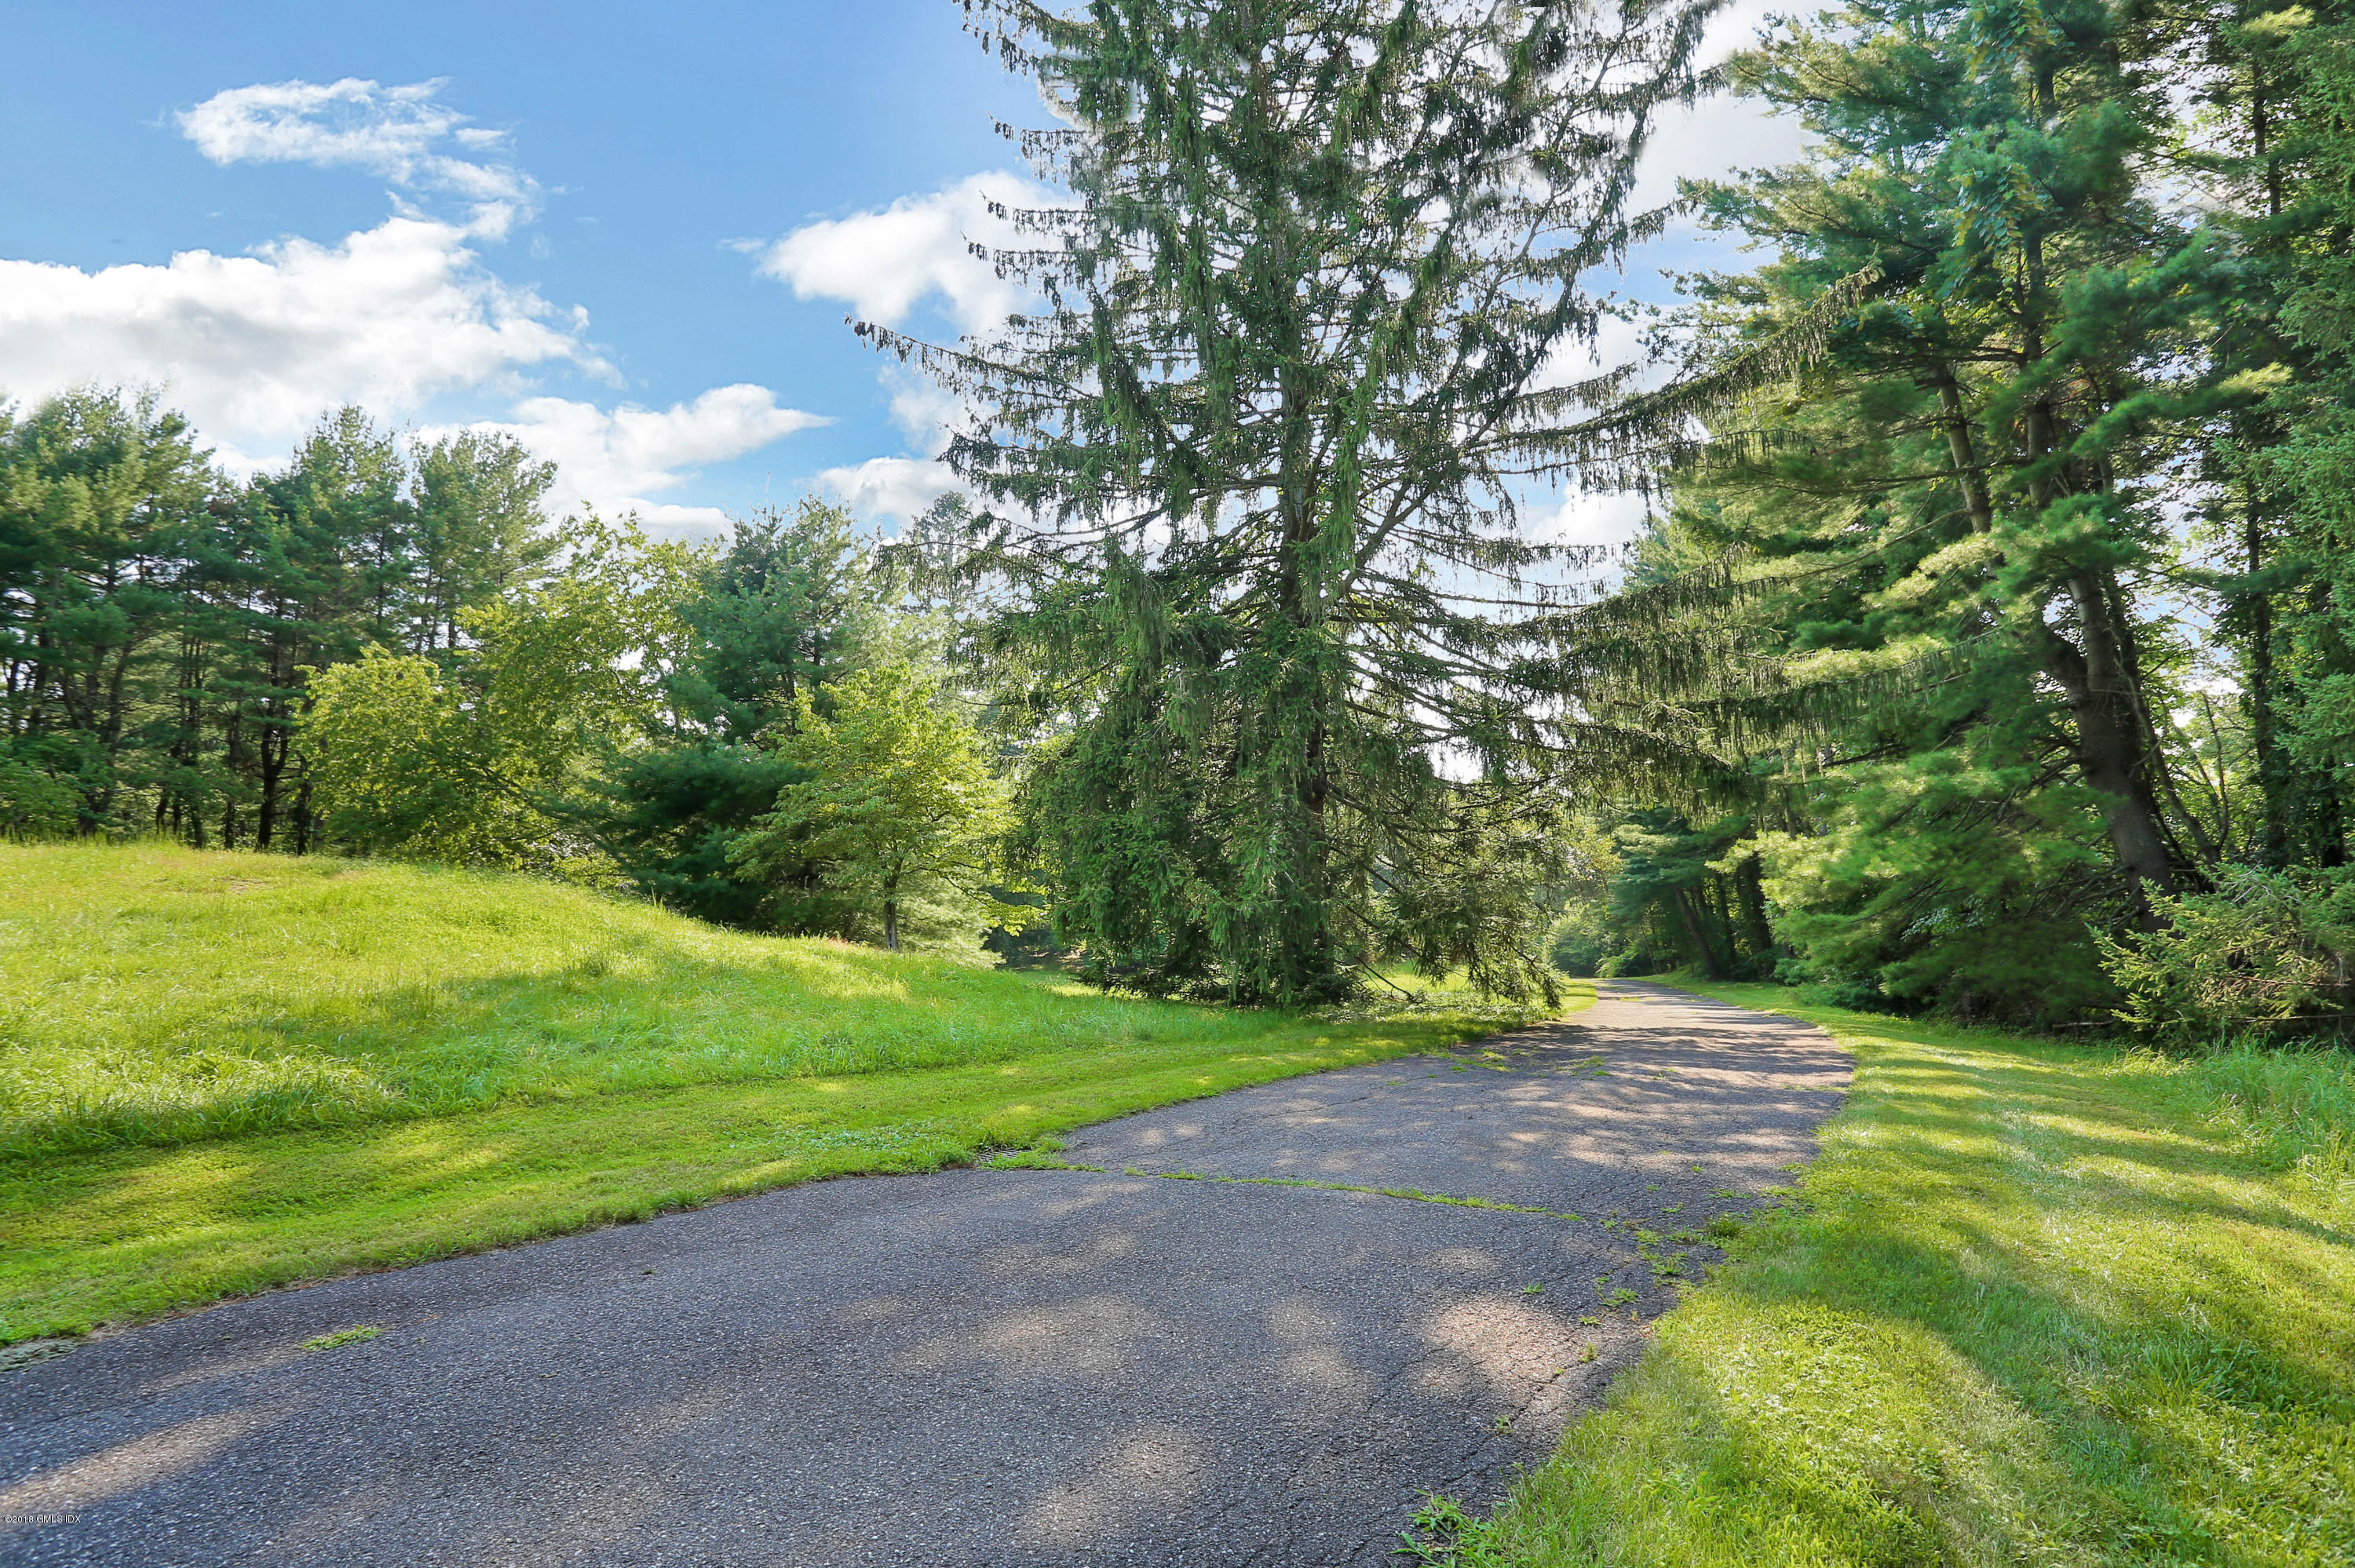 17 Fort Hills Lane,Greenwich,Connecticut 06831,7 Bedrooms Bedrooms,6 BathroomsBathrooms,Fort Hills,104460